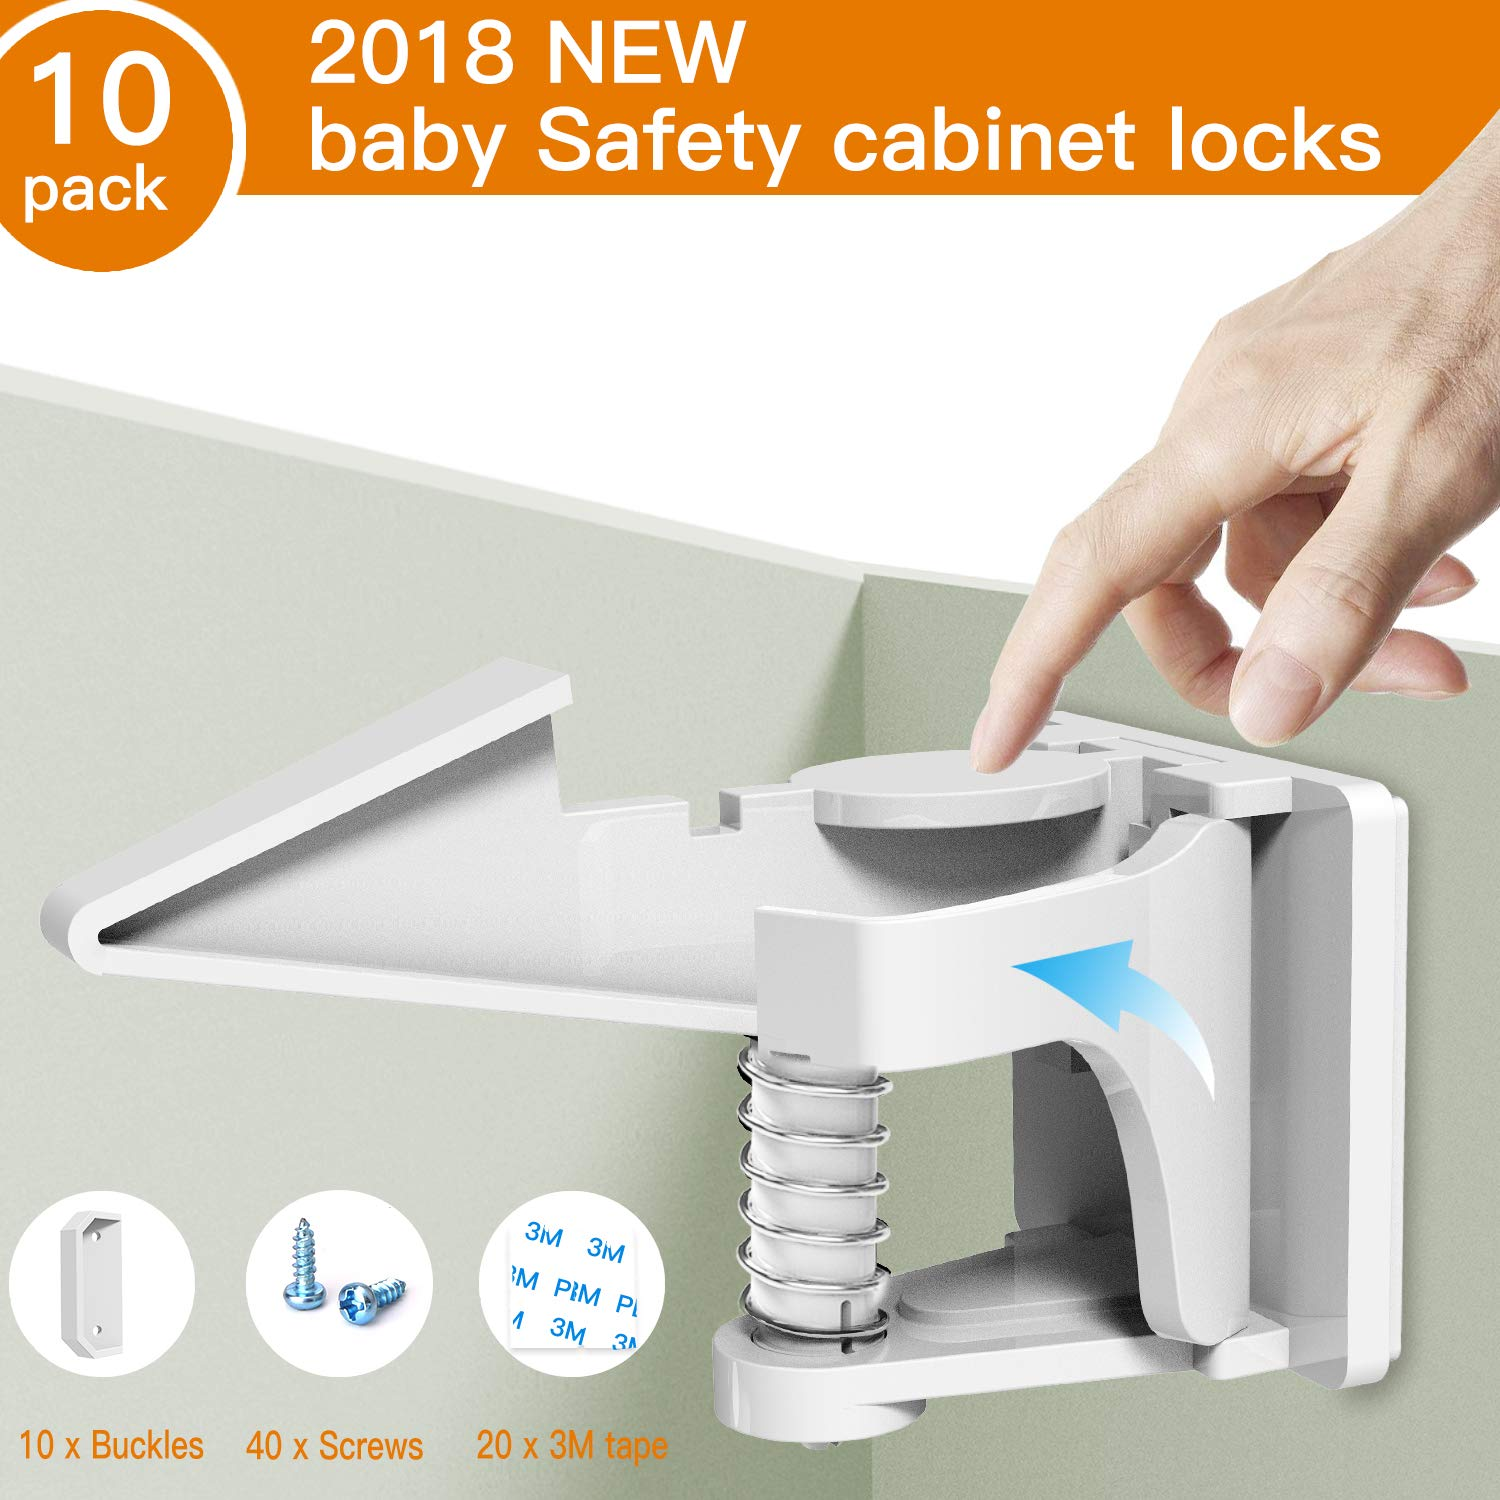 Baby Safety Cabinet Locks, Child Proofing Safety Latches for Cabinets and Drawers, Invisible Design to Keep Kids Safe, Easy to Install with Strong 3M Adhesive, 10Pcs